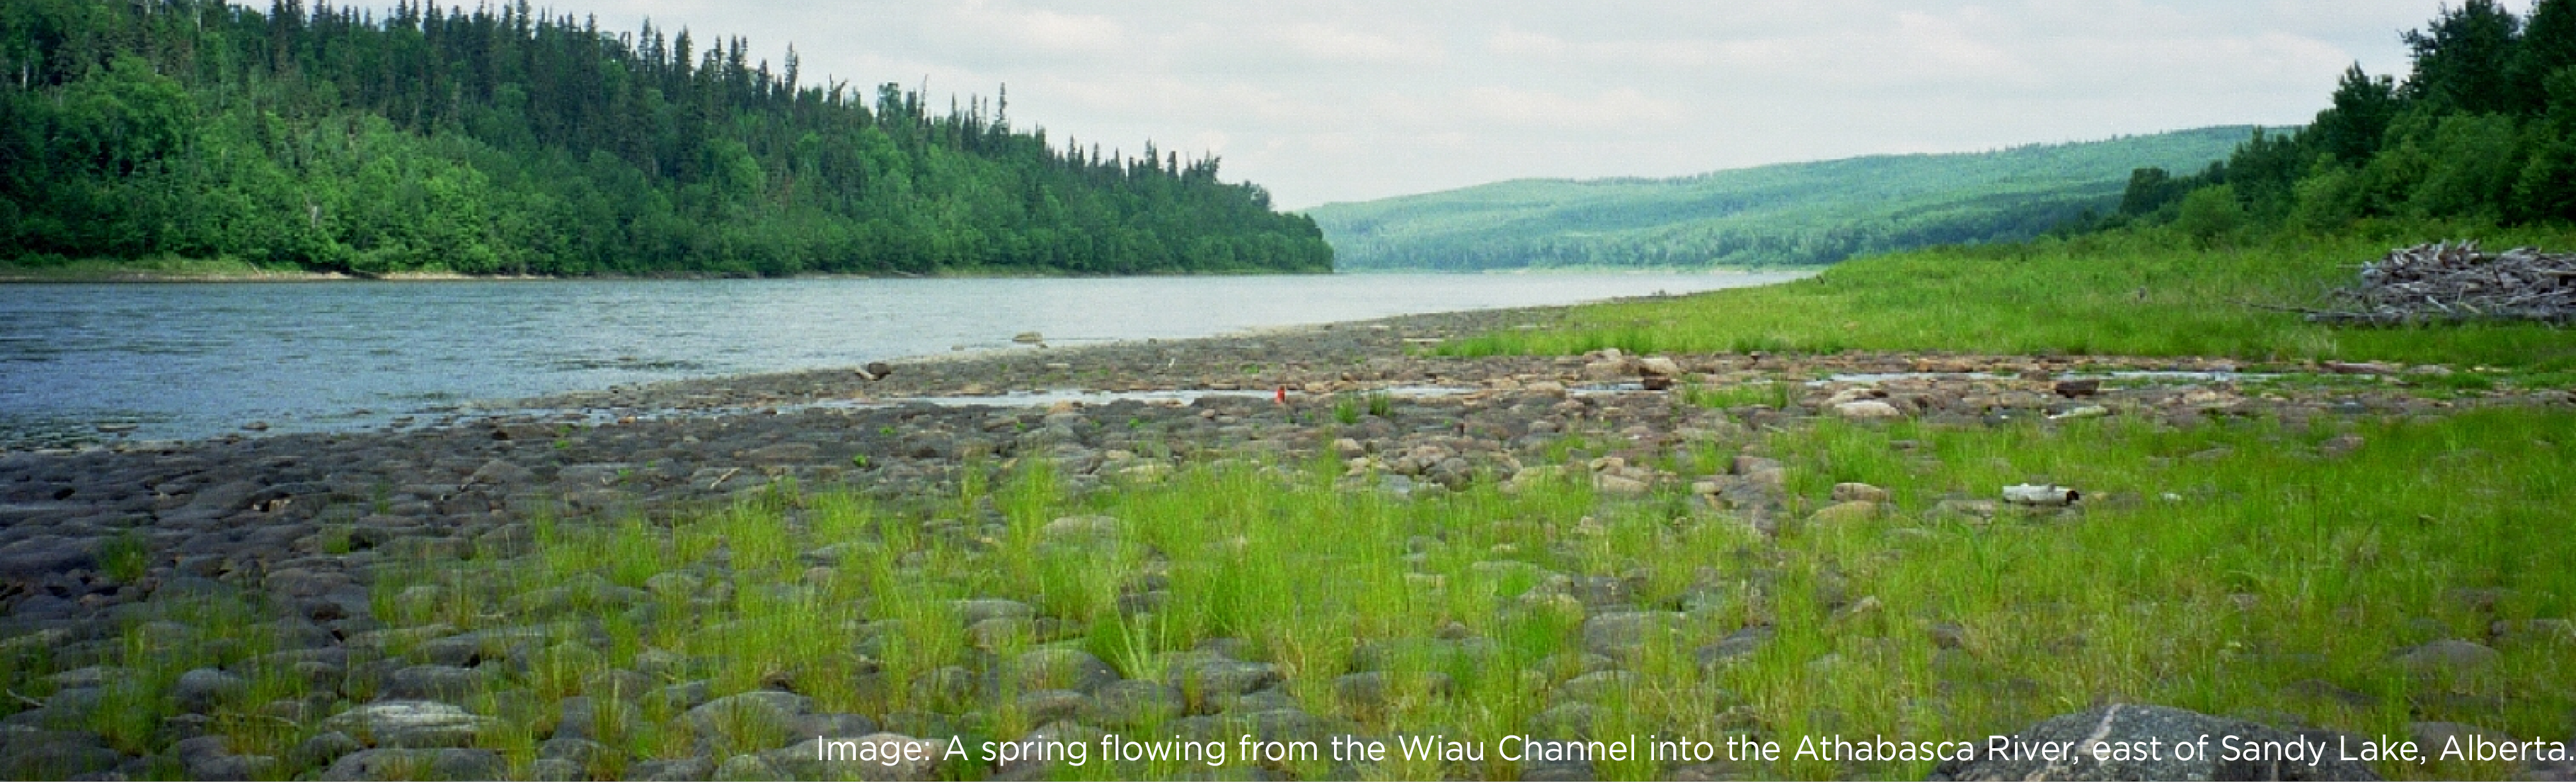 Spring from Wiau Channel flowing into Athabasca River, Alberta.